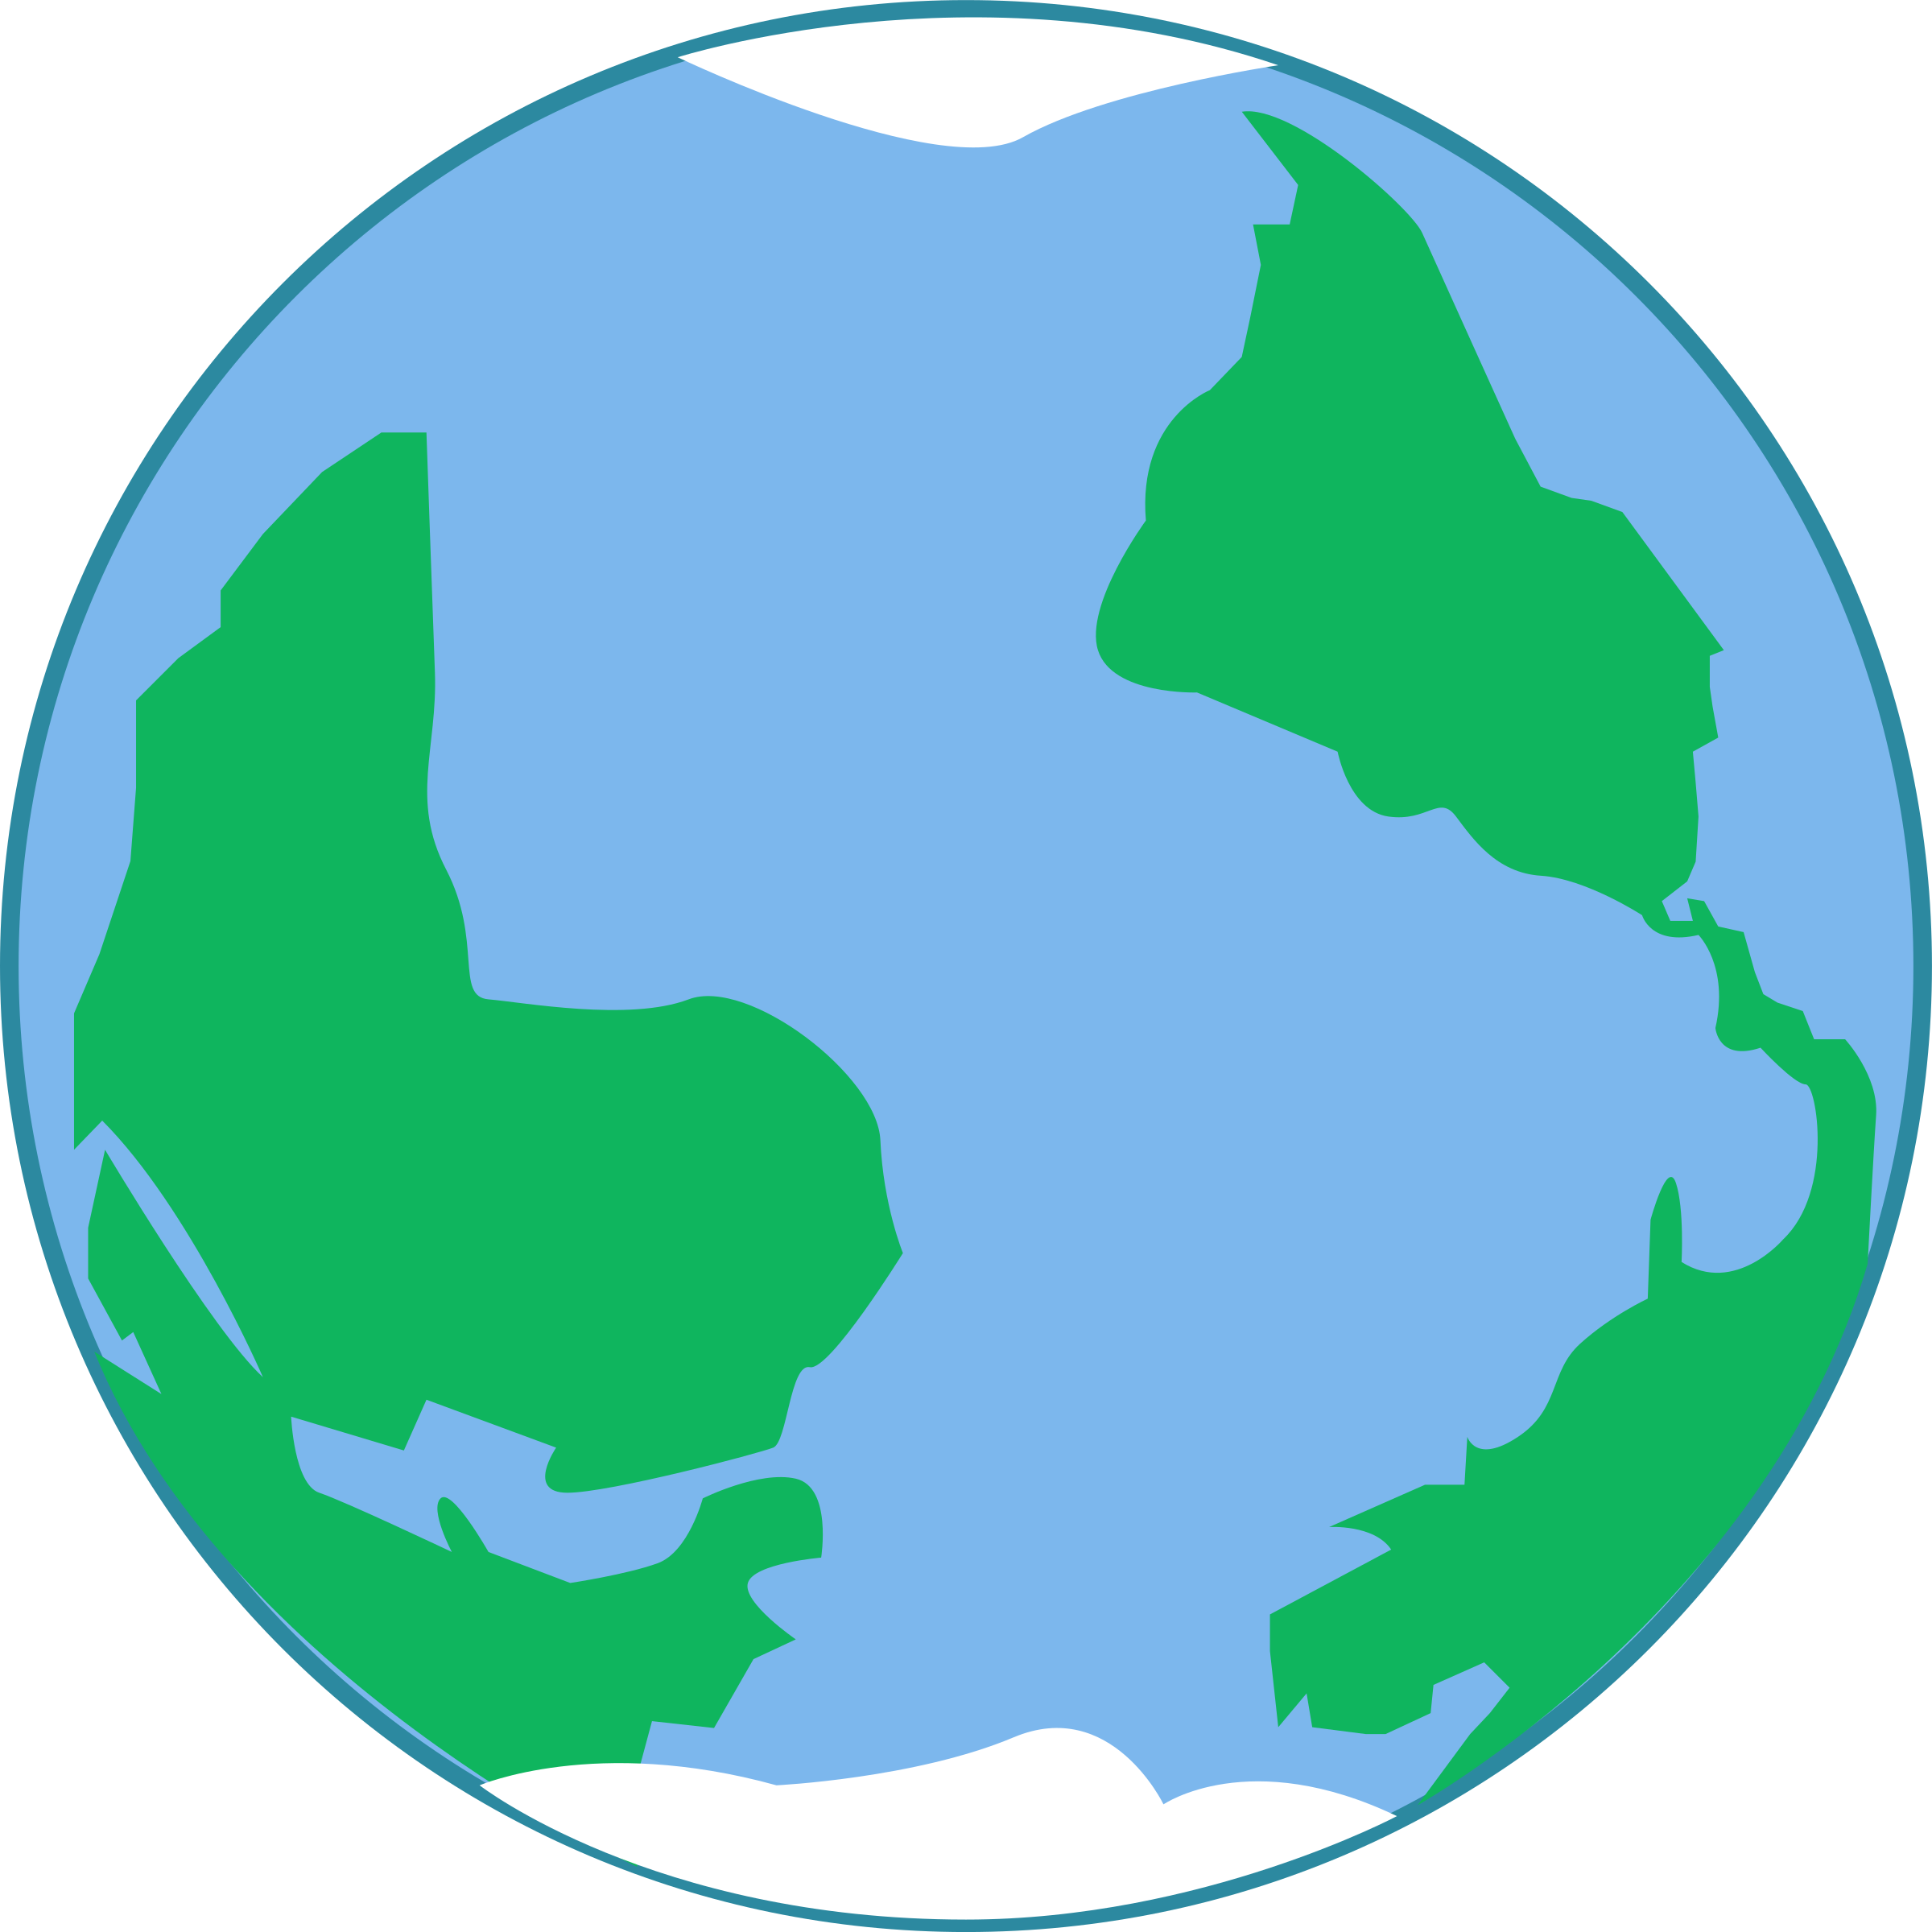 clipart royalty free download World Map In Globe Vector Copy Globes Clipart Panda Free Refrence